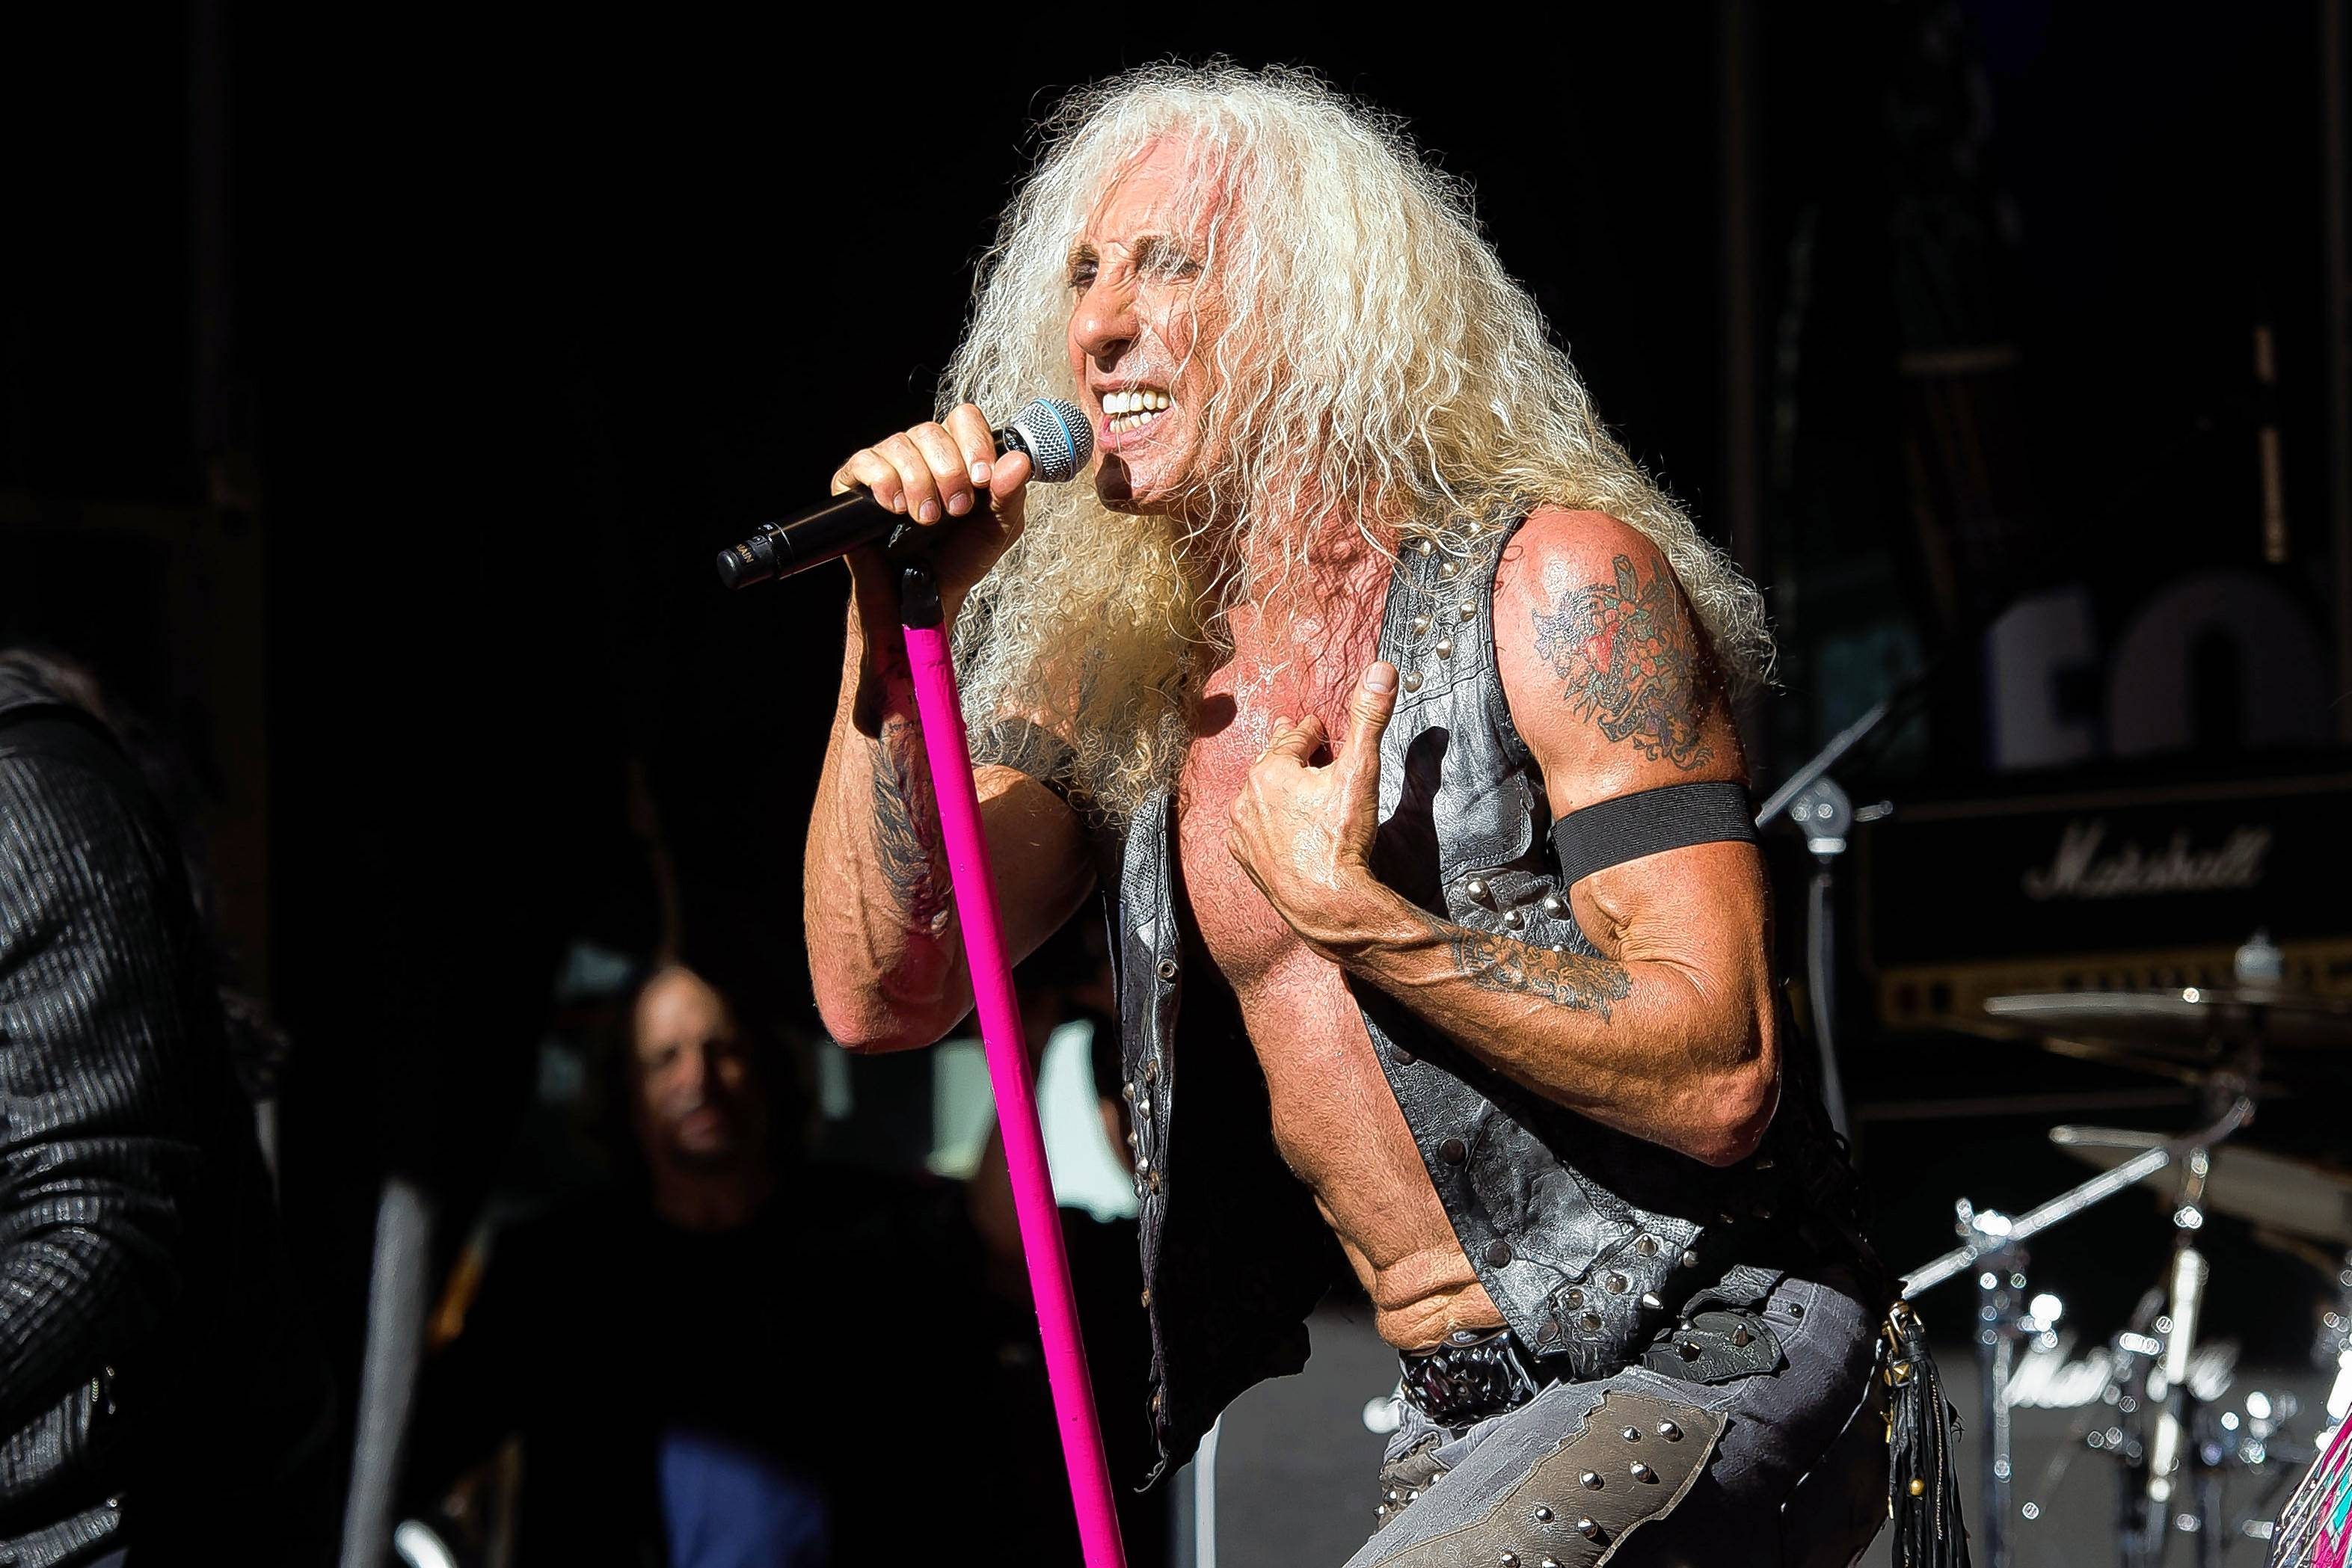 Dee Snider from the band Twisted Sister performs at the Arcada Theatre in St. Charles on Saturday, July 22.